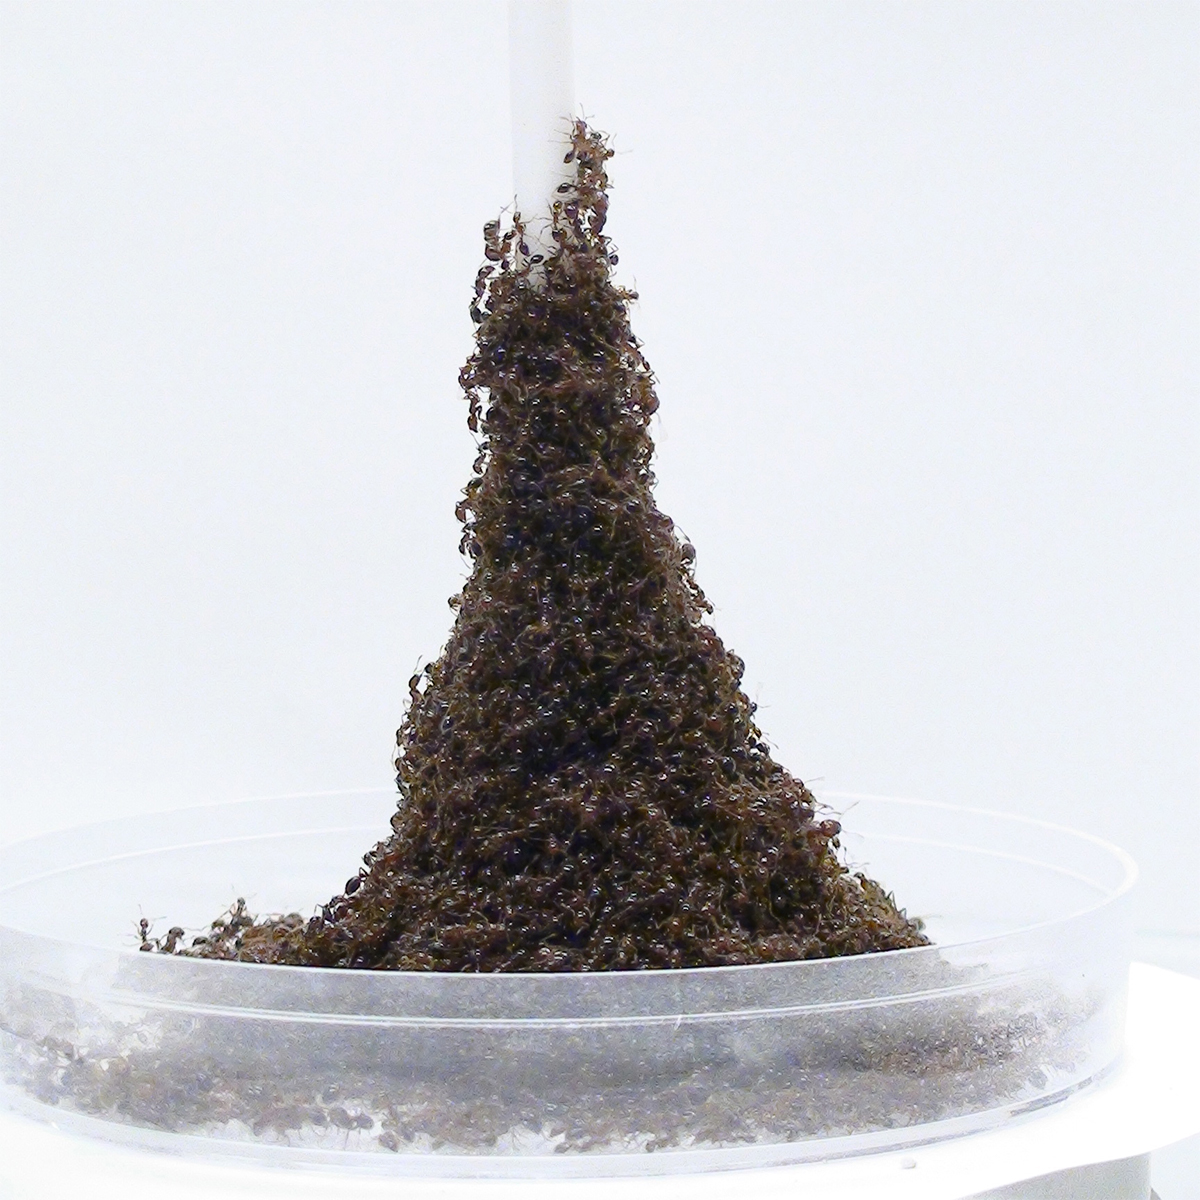 Fire ants building a tower around a pole.